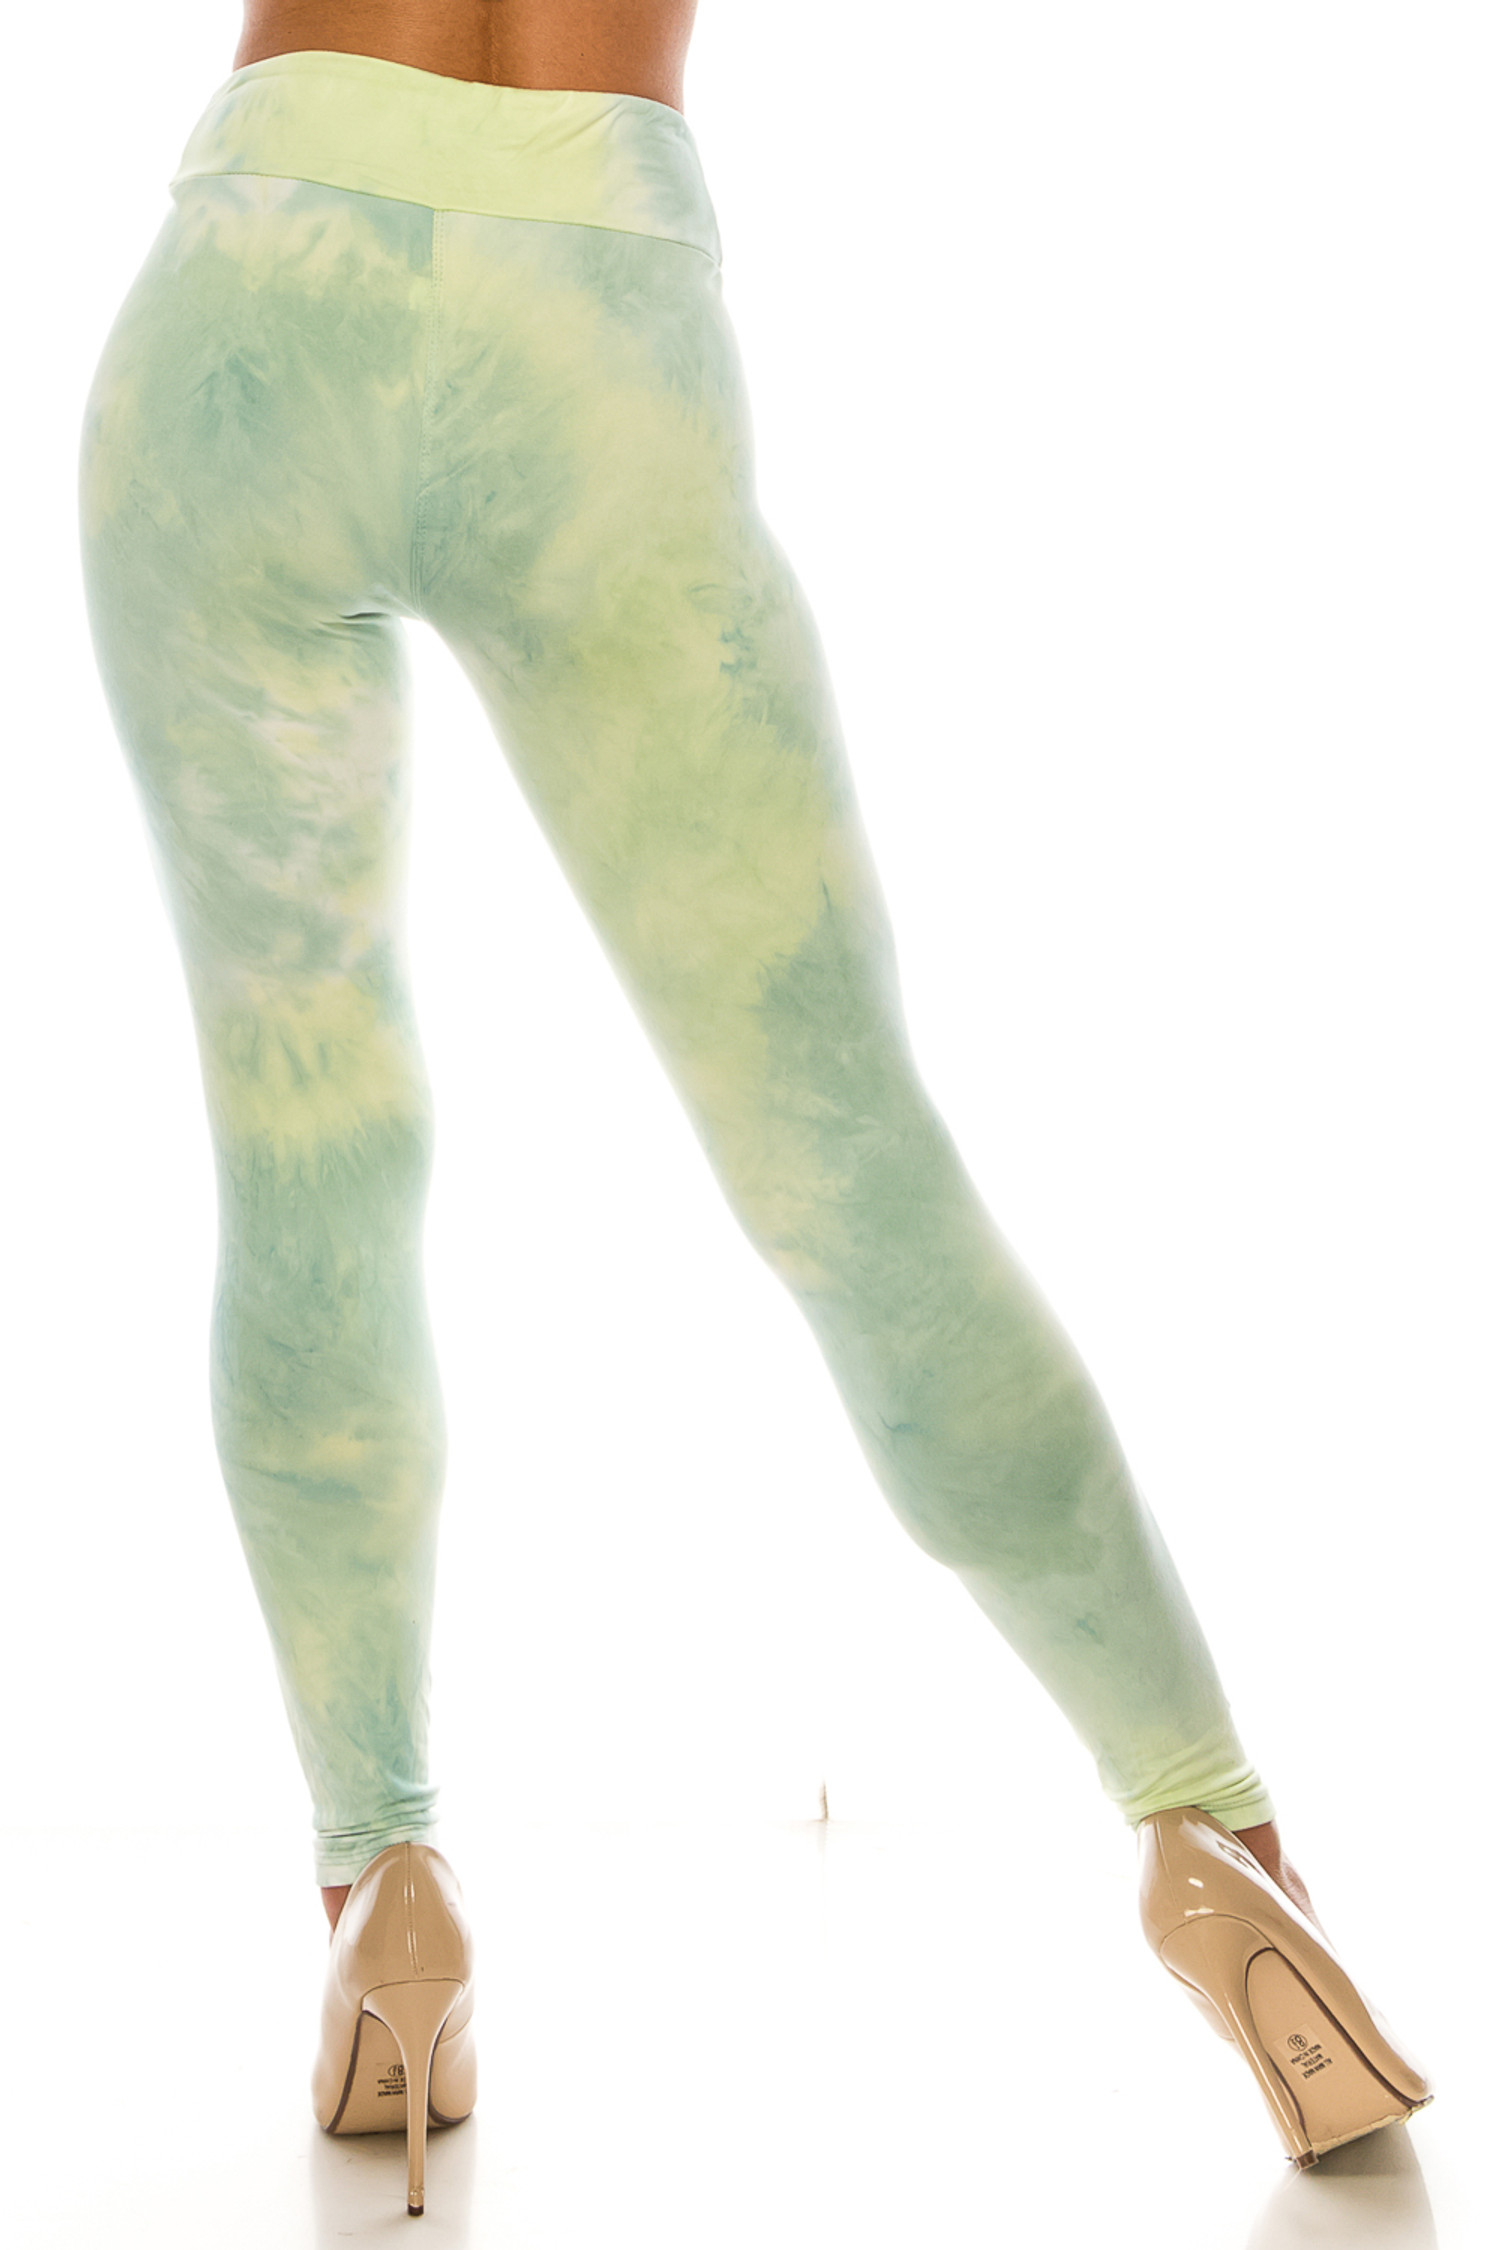 Back view of Buttery Soft Mint Tie Dye High Waisted Leggings - Plus Size with a flattering fitted silhouette.